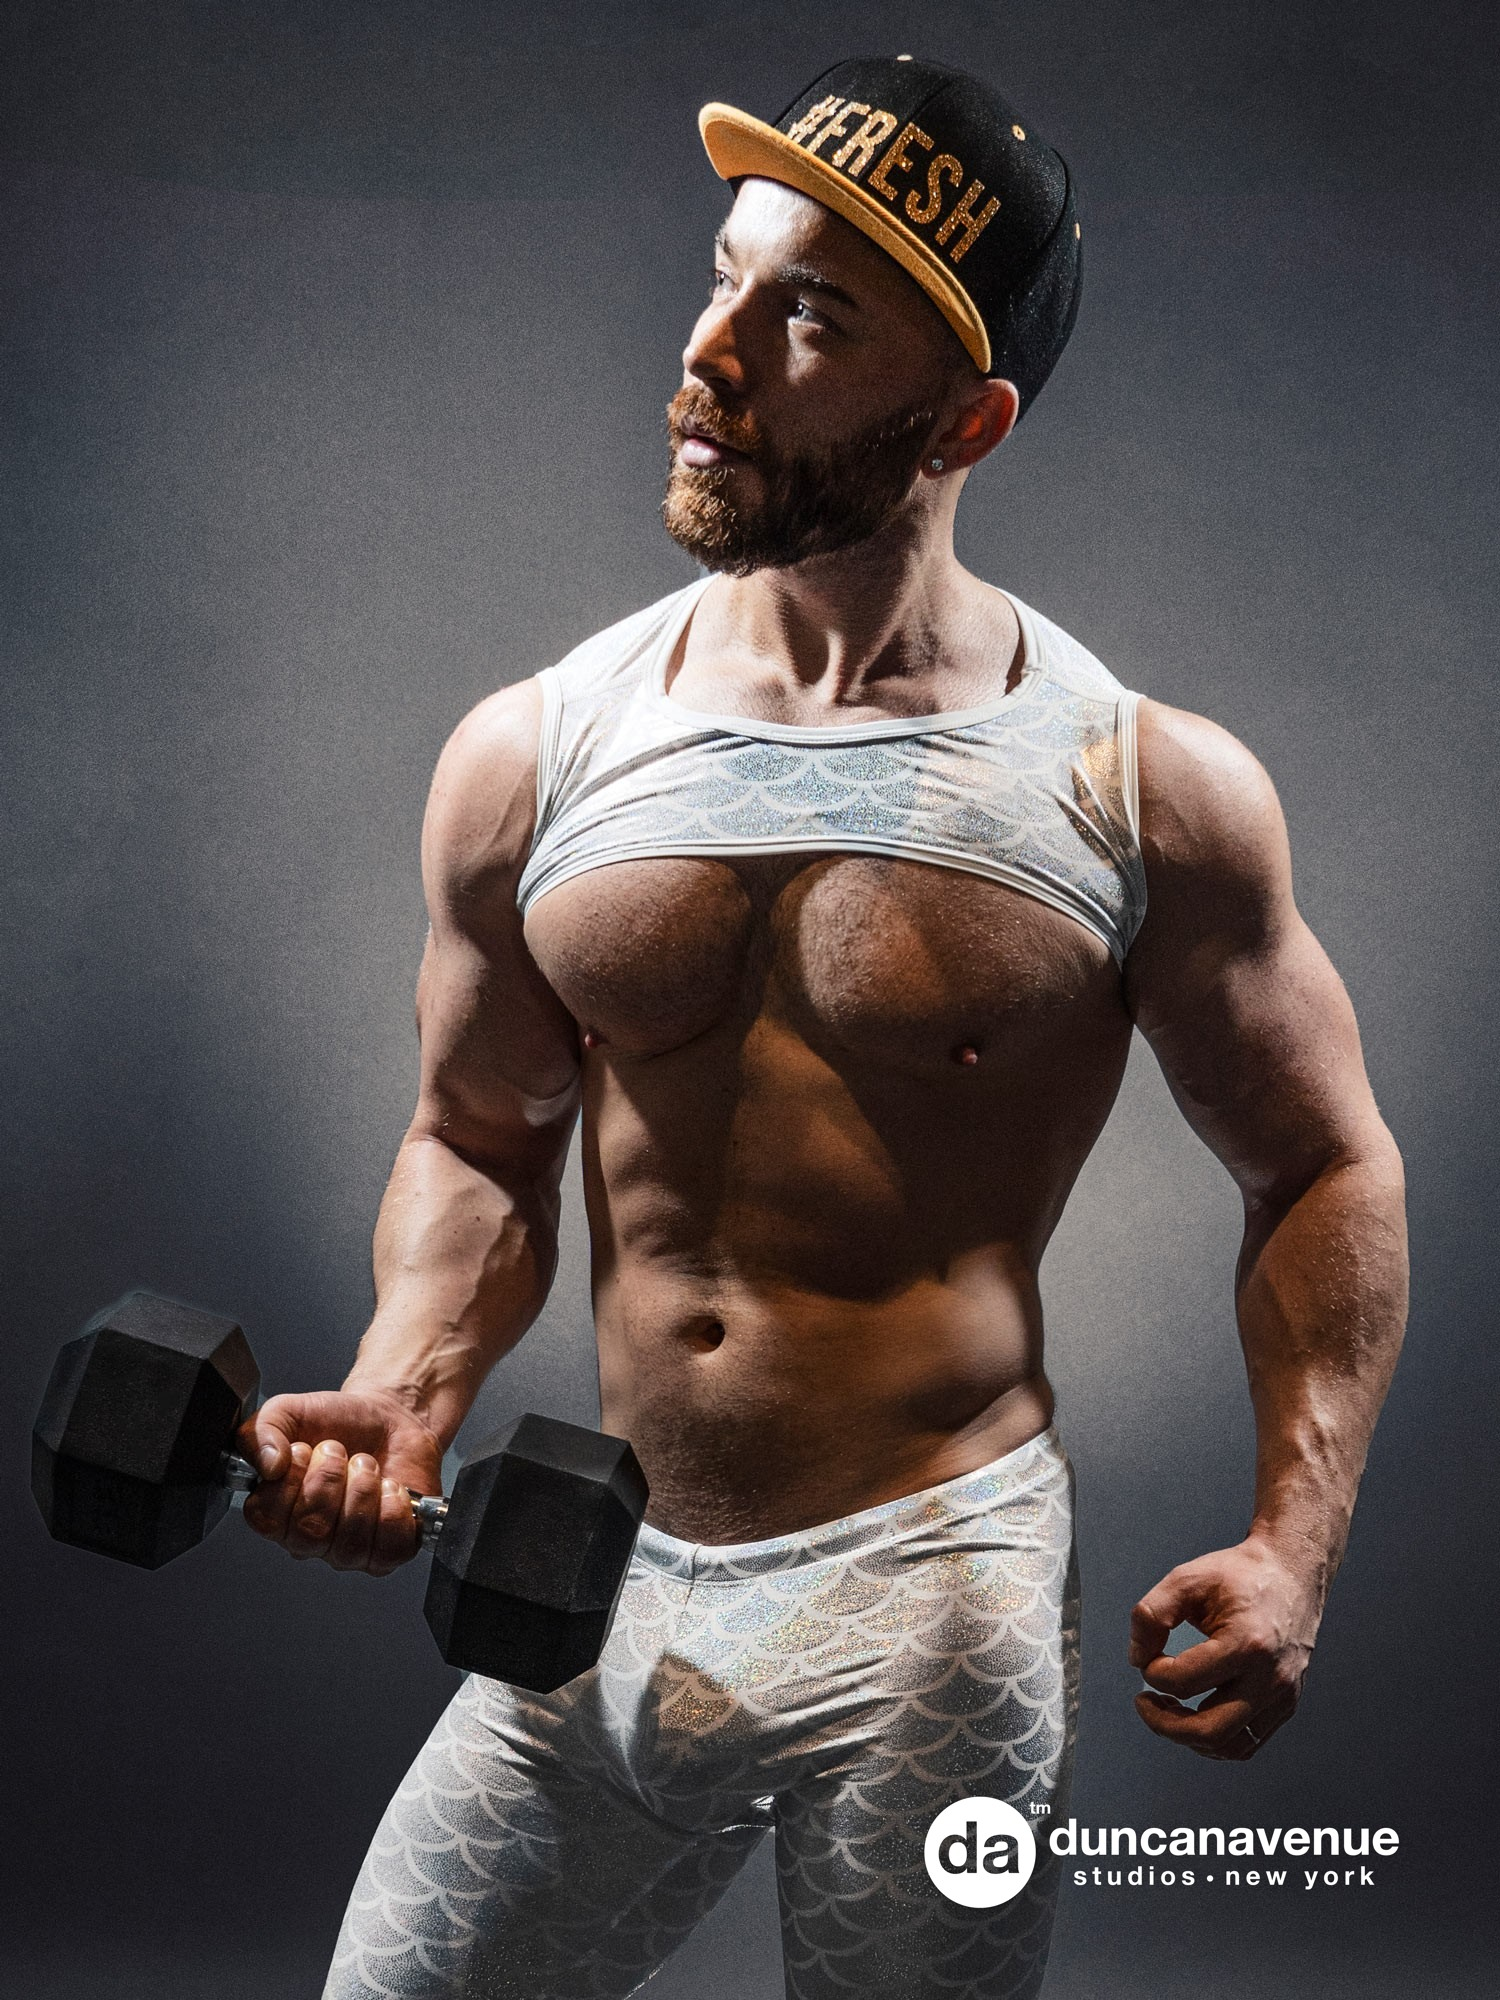 Bodybuilding Fitness OnlyFans Photography by Maxwell Alexander – Best Gay OnlyFans Profile – Best Guys on OnlyFans – Best Gay OnlyFans Model